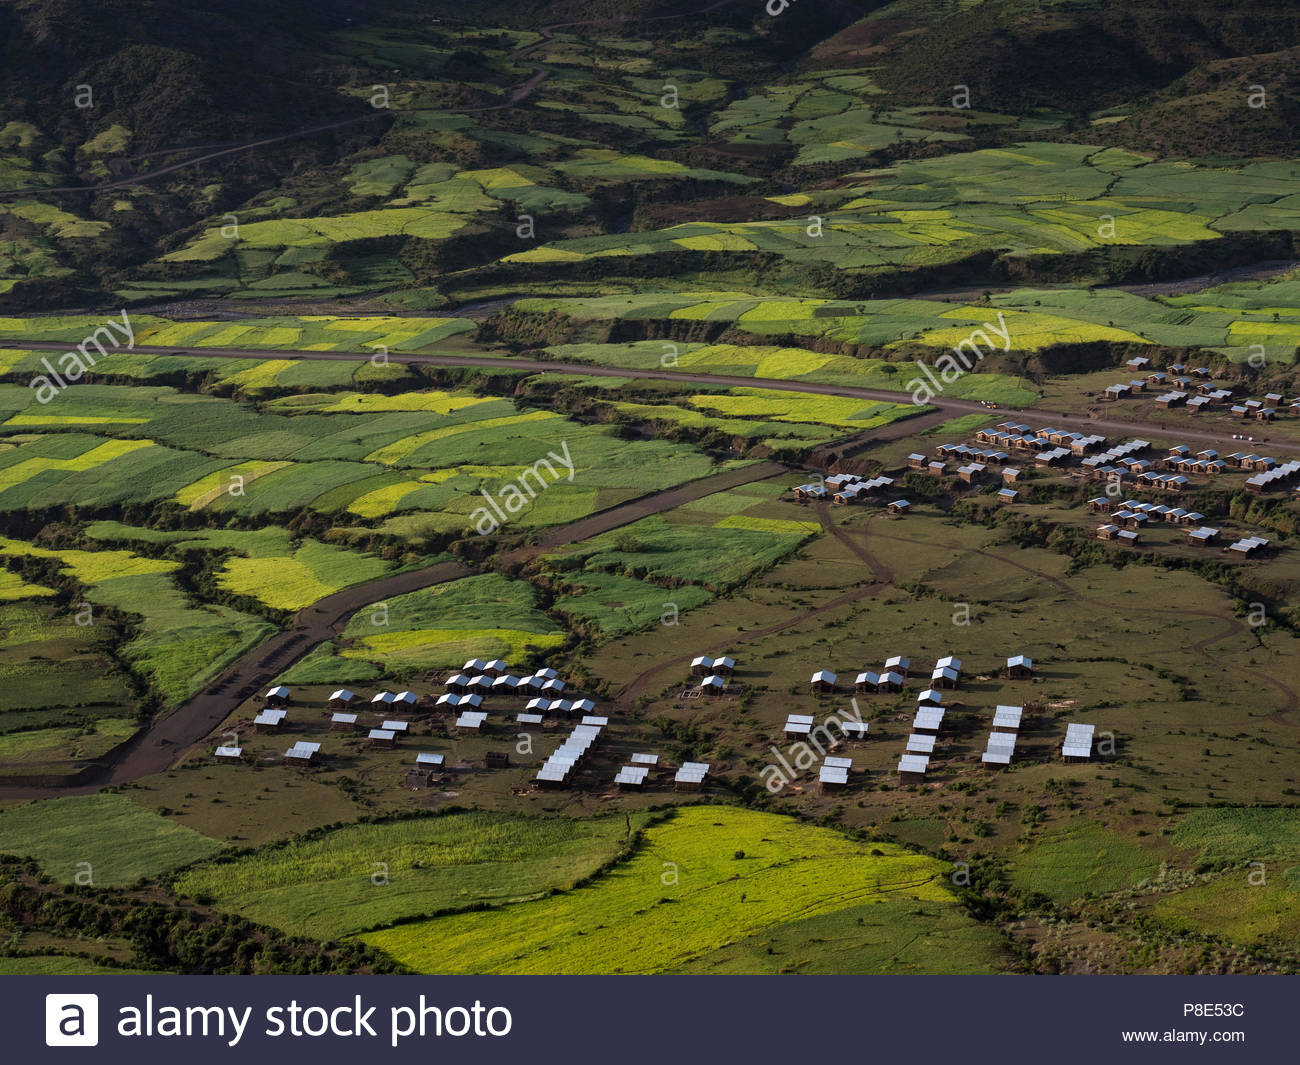 Cultivated fields in the valley, near Lalibela, Ethiopia - Stock Image